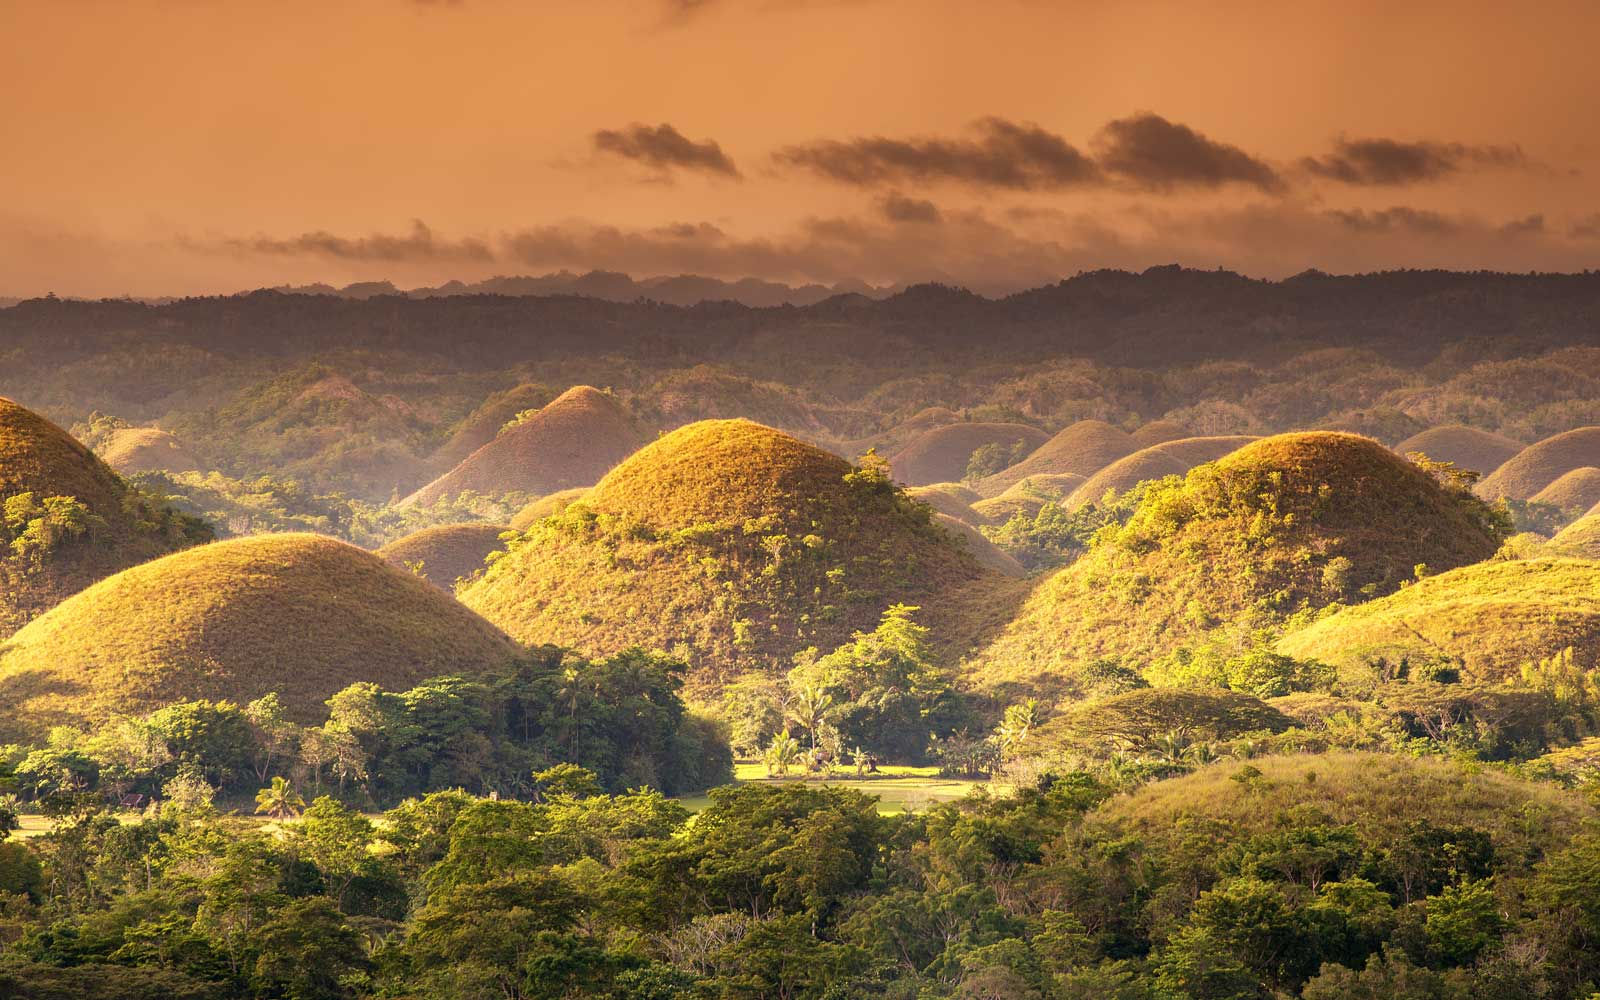 The Chocolate Hills are a unique geological formation in the Bohol, Philippines